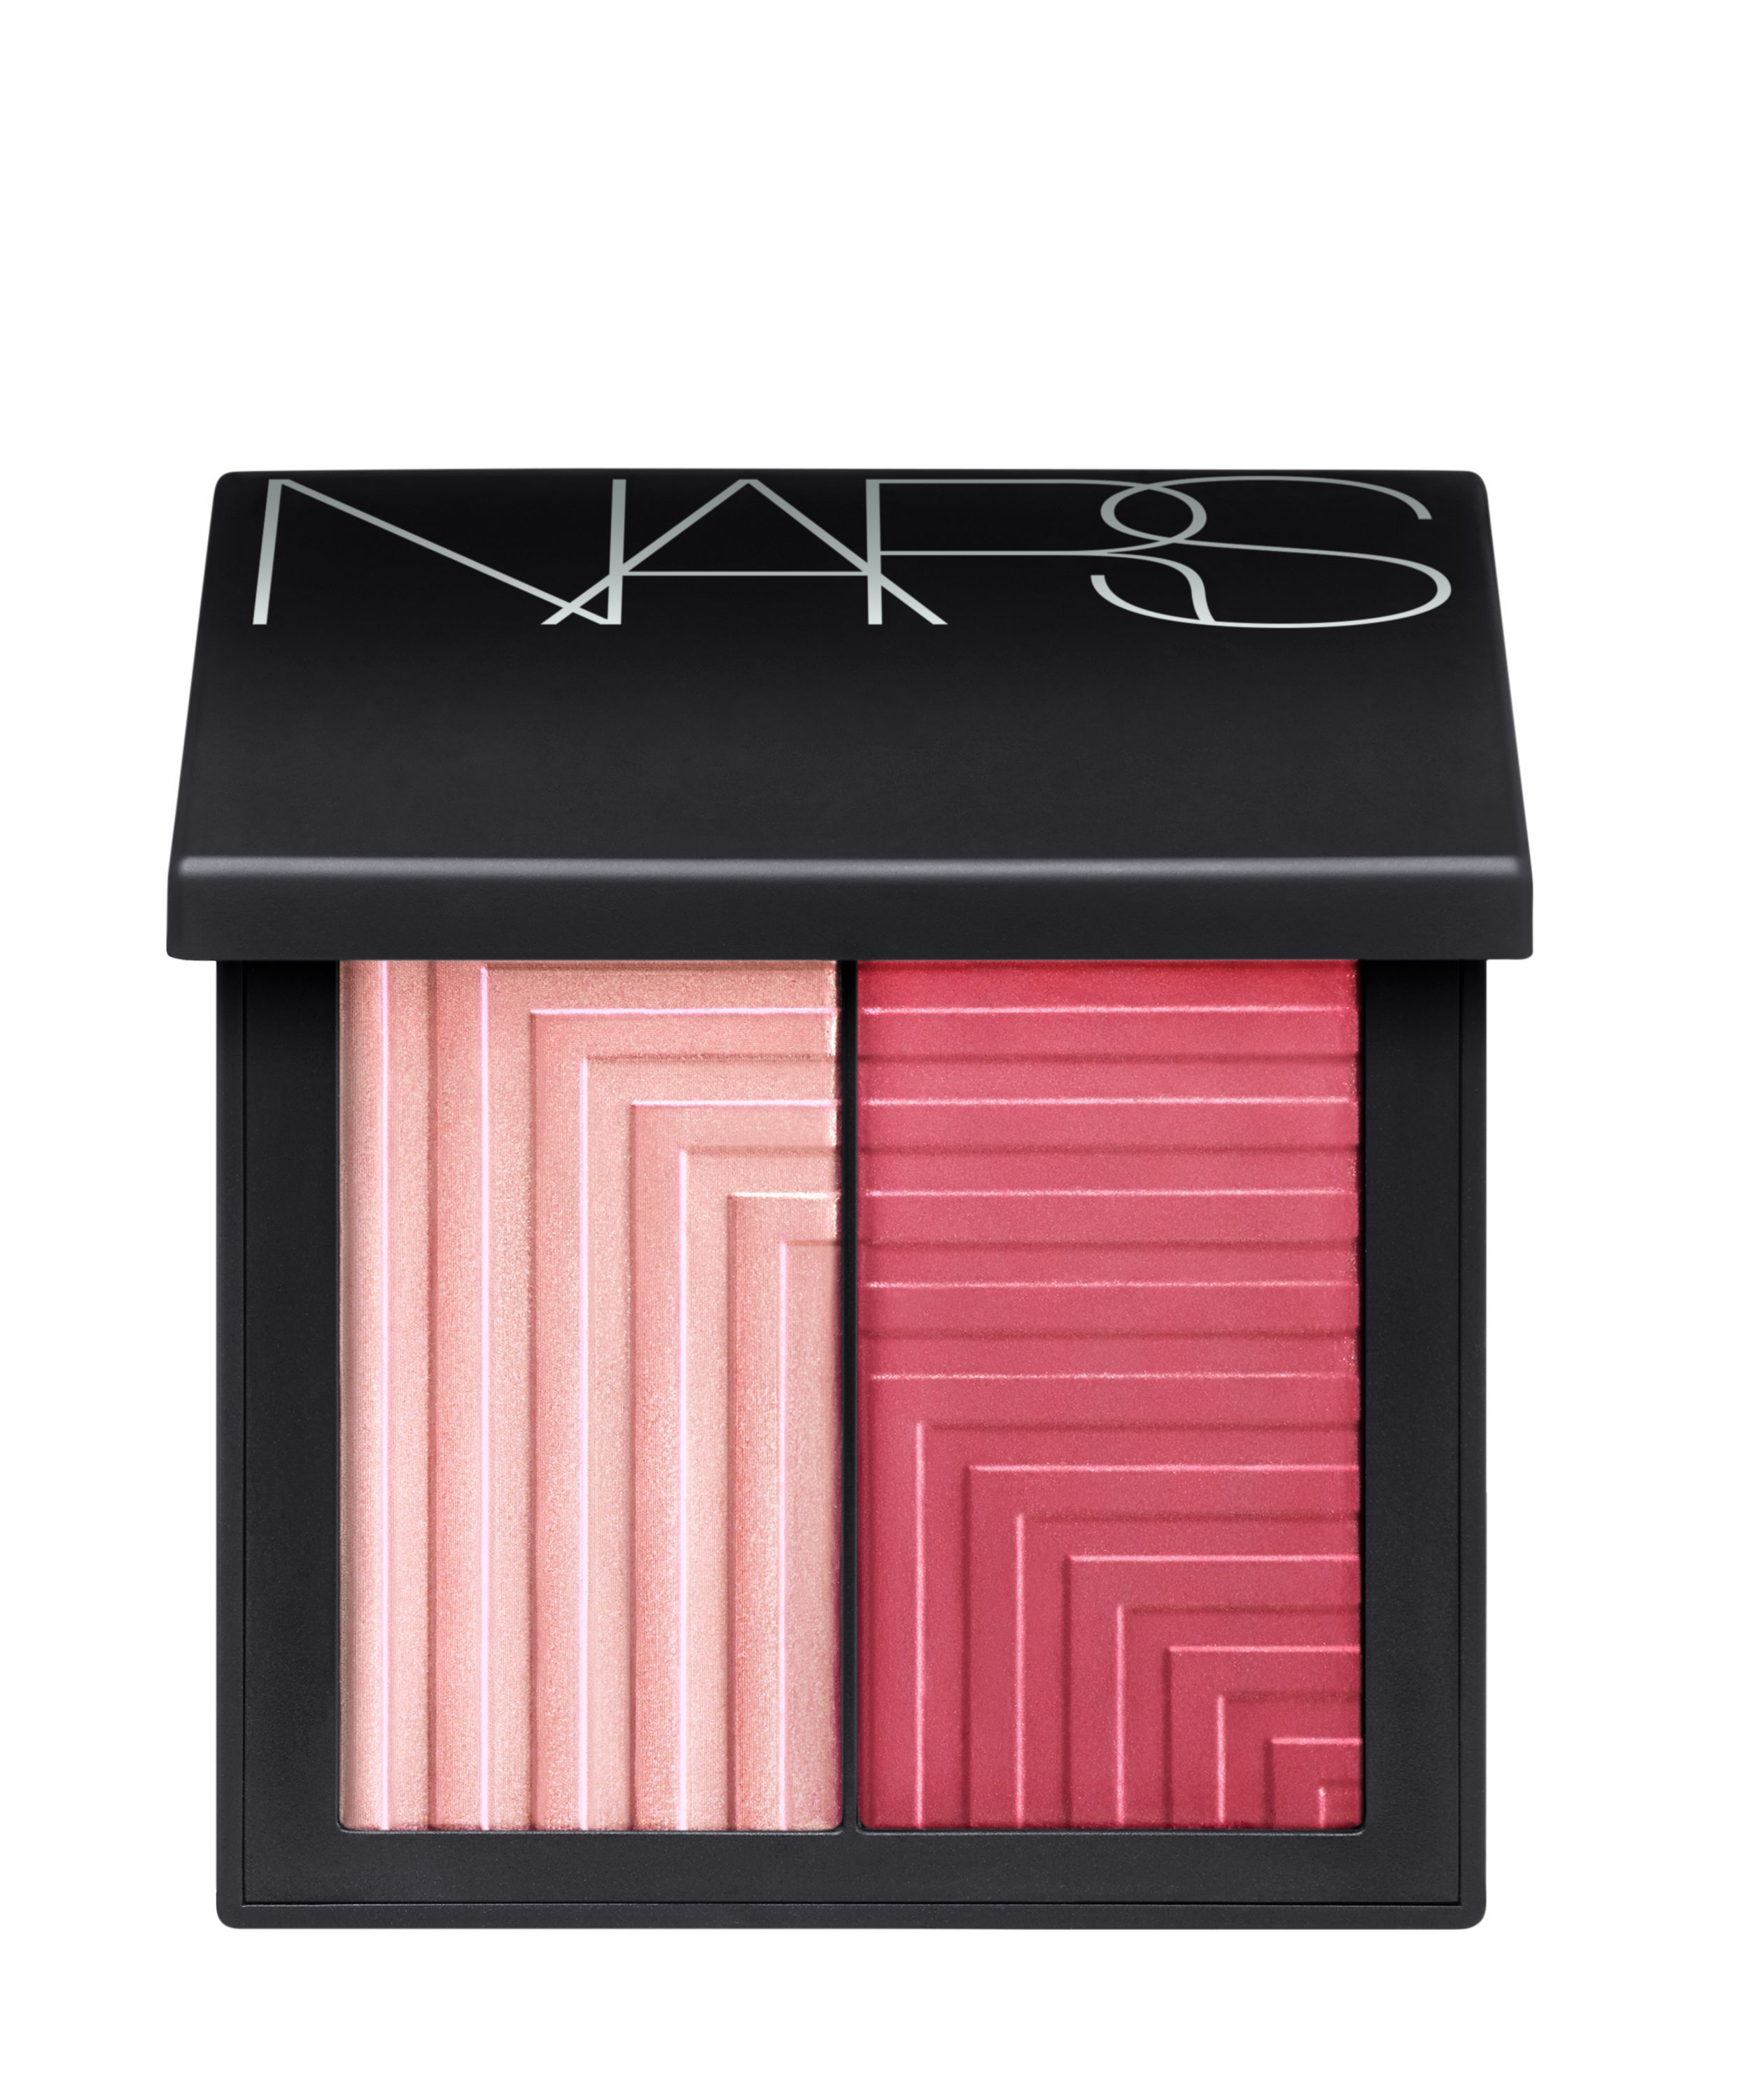 Nars Cosmetics Nars Cosmetics Dual Intensity Blush, Adoration